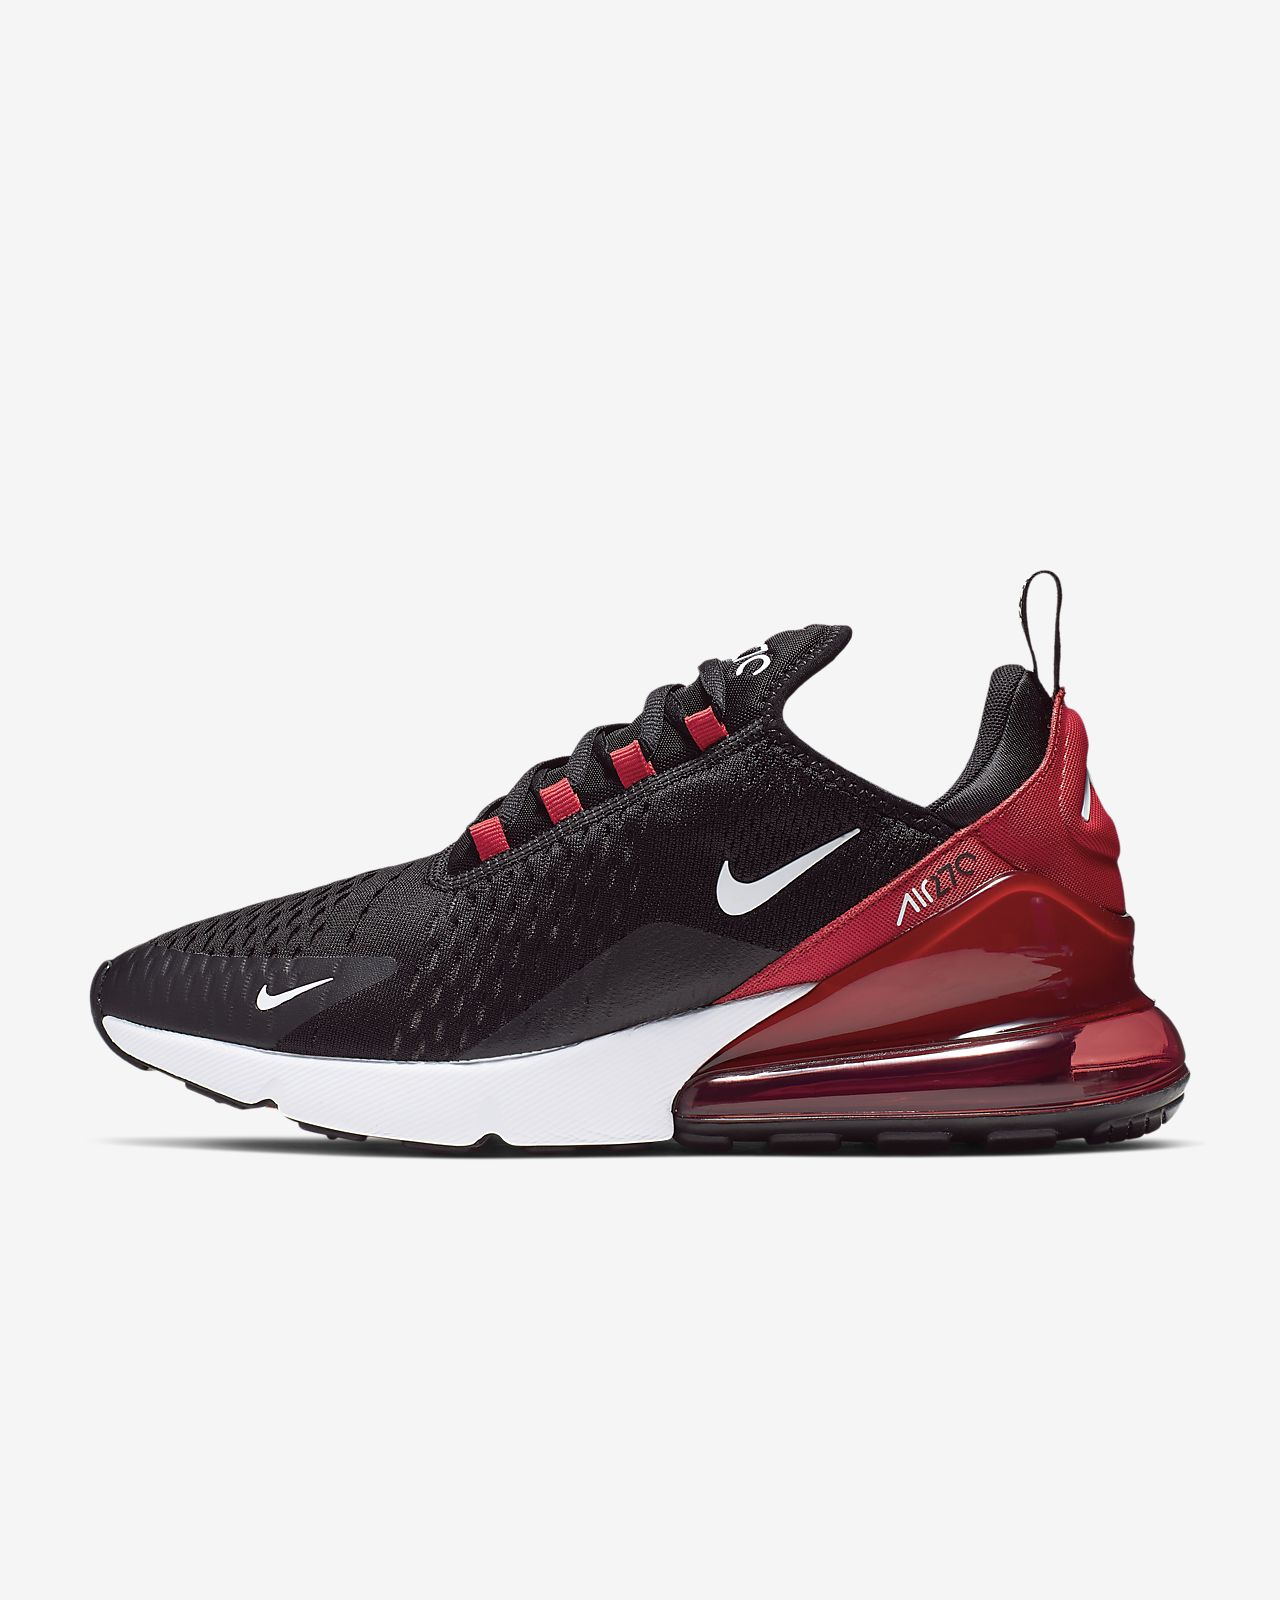 lowest price a5cc6 f7877 ... Nike Air Max 270 Men s Shoe